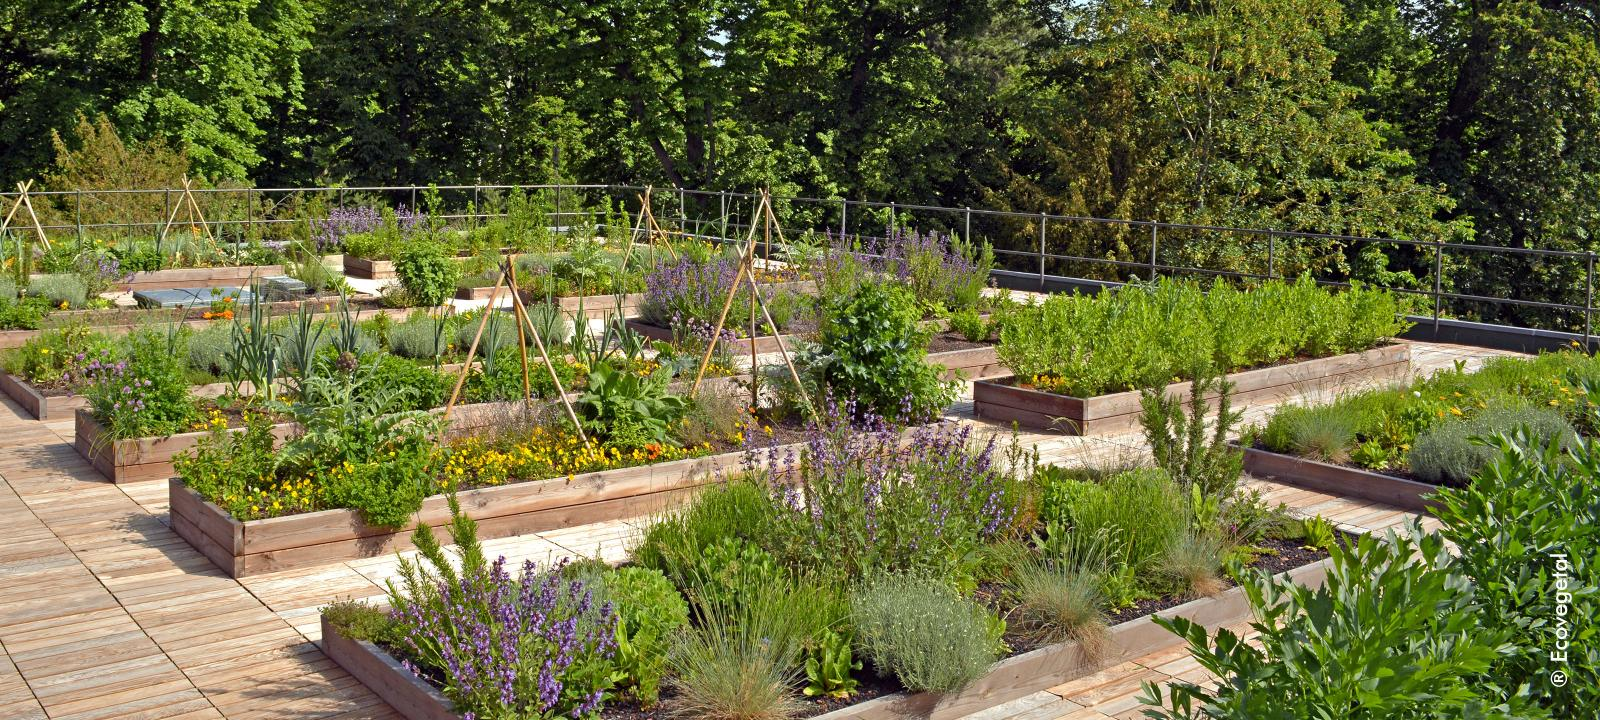 Plant beds with herbs and vegetables on a rooftop